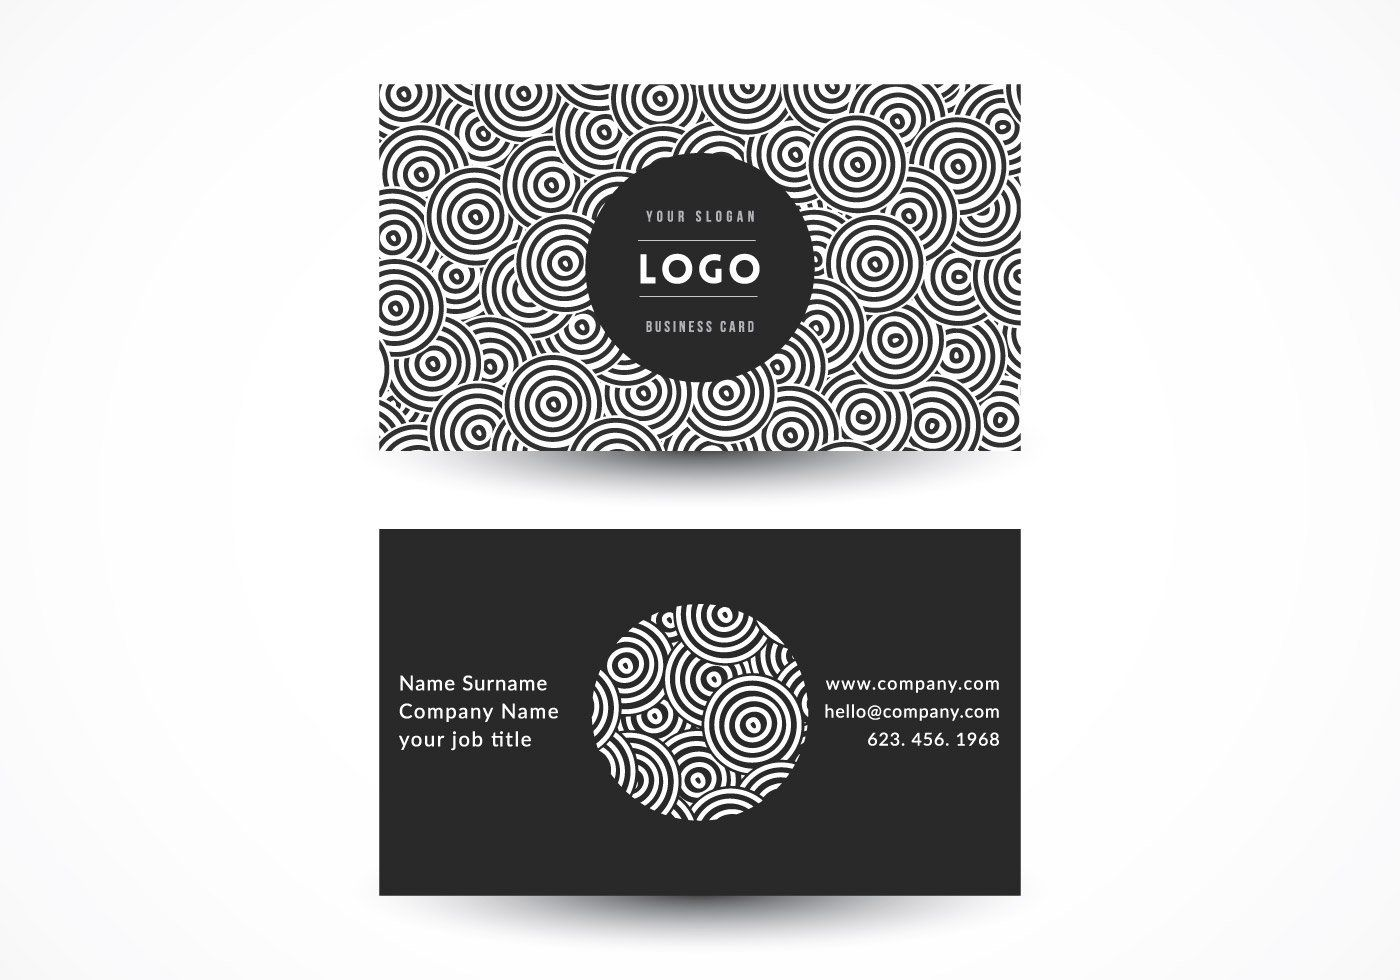 Geometric circles business card vector graphic business template geometric circles business card vector graphic business template business card communication psychedelic friedricerecipe Choice Image